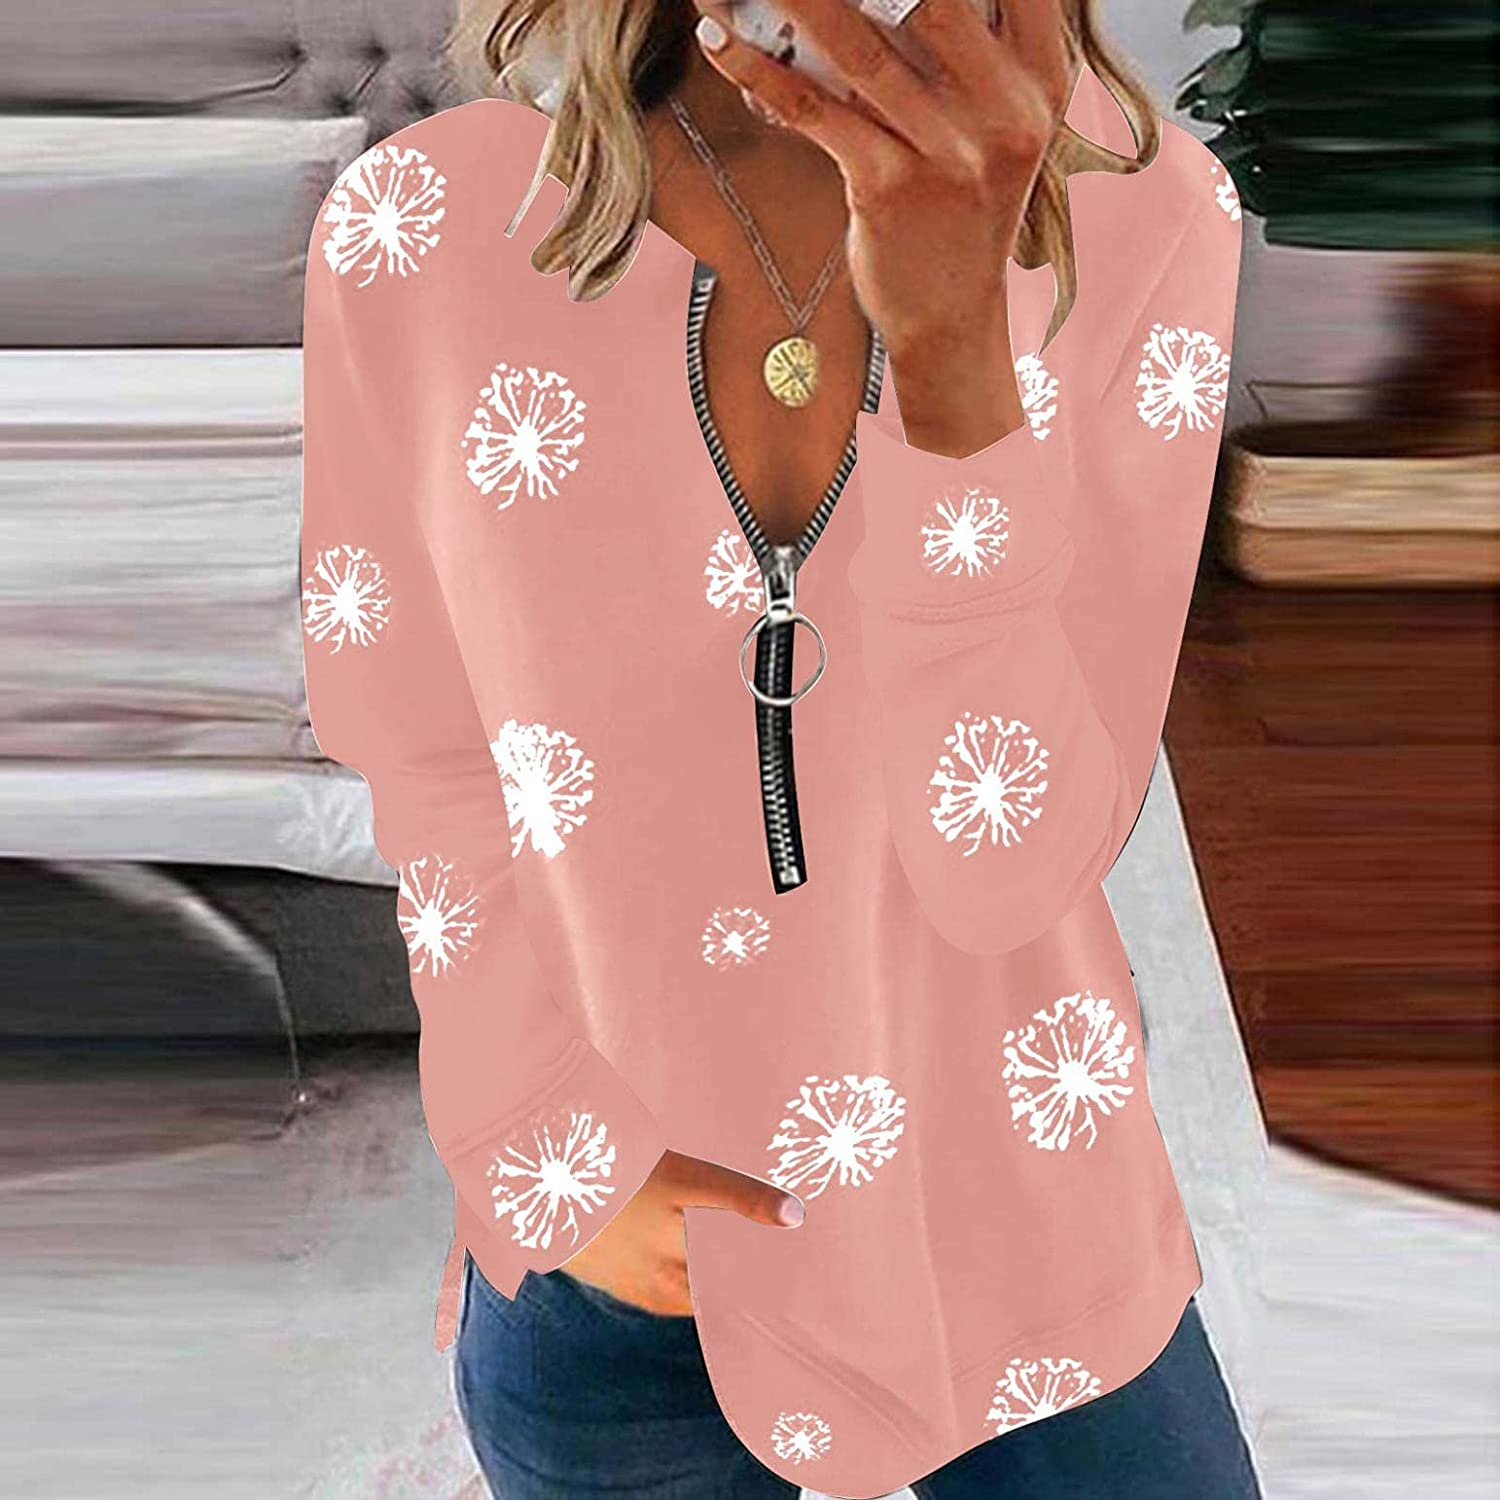 lucyouth Long Sleeve Shirts for Women Sexy,Deep V Neck Tunic Tops Zip Down T Shirts Casual Dandelions Print Blouses Tops